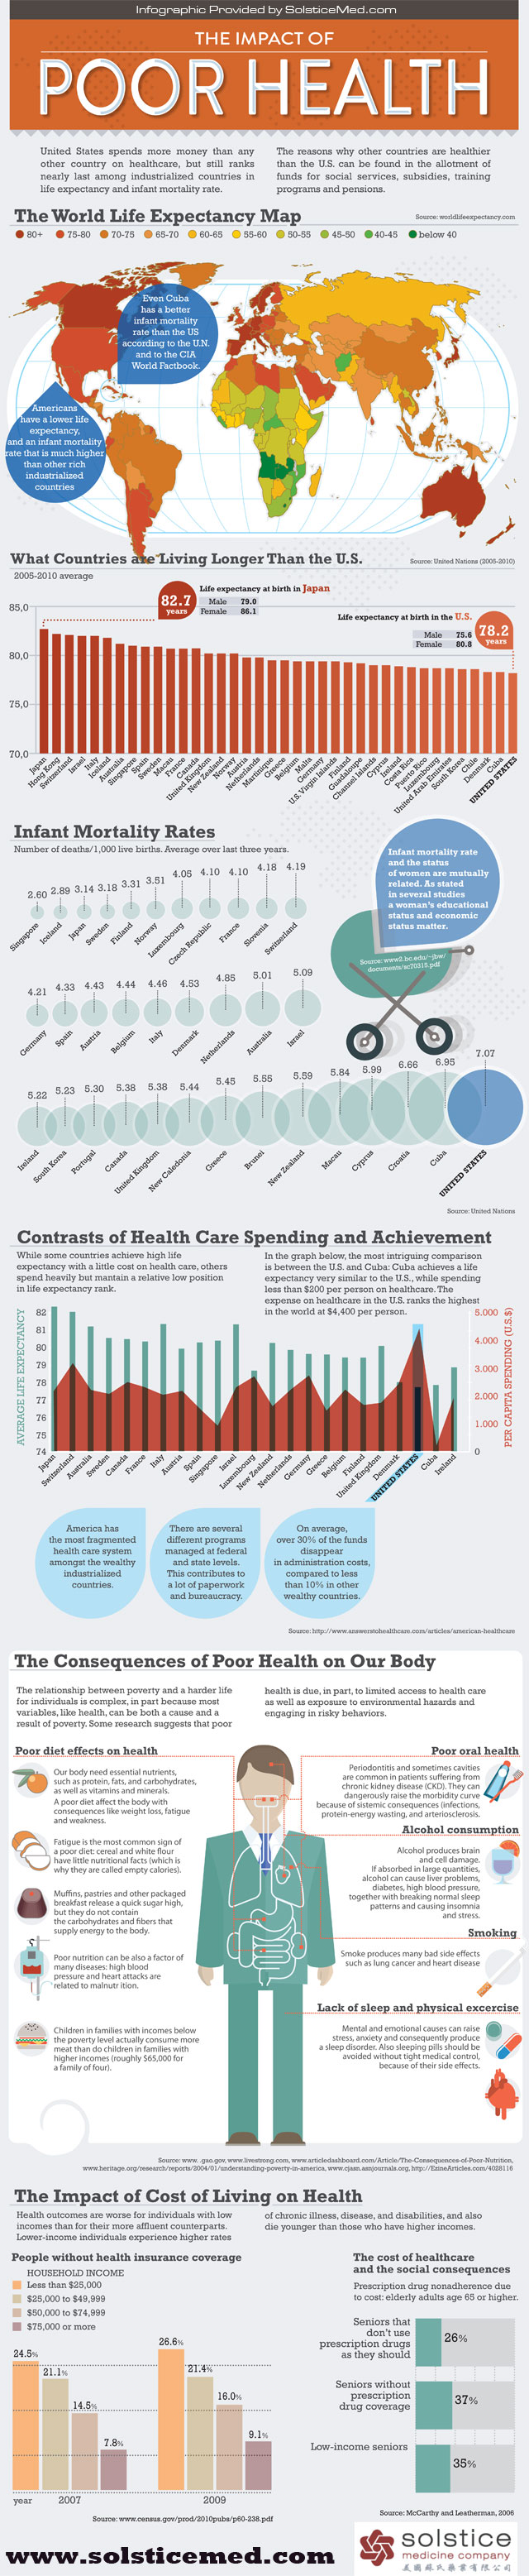 Healthcare Spending vs Life Expectancy-Infographic